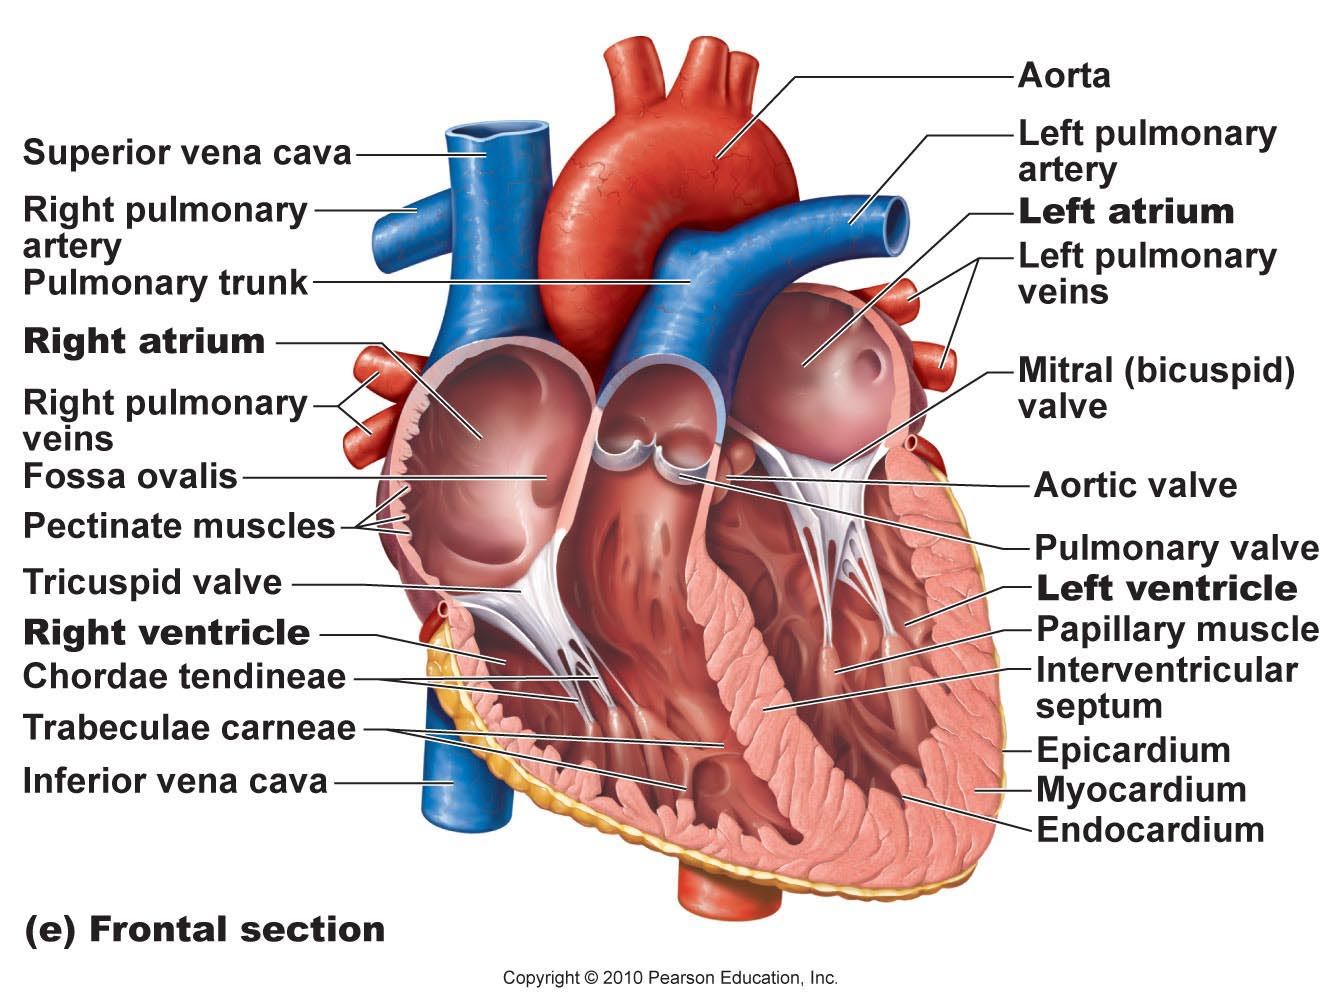 Labeled drawing of the heart at getdrawings free for personal 1344x1008 human anatomy diagram frontal section trabeculae carneae heart ccuart Choice Image